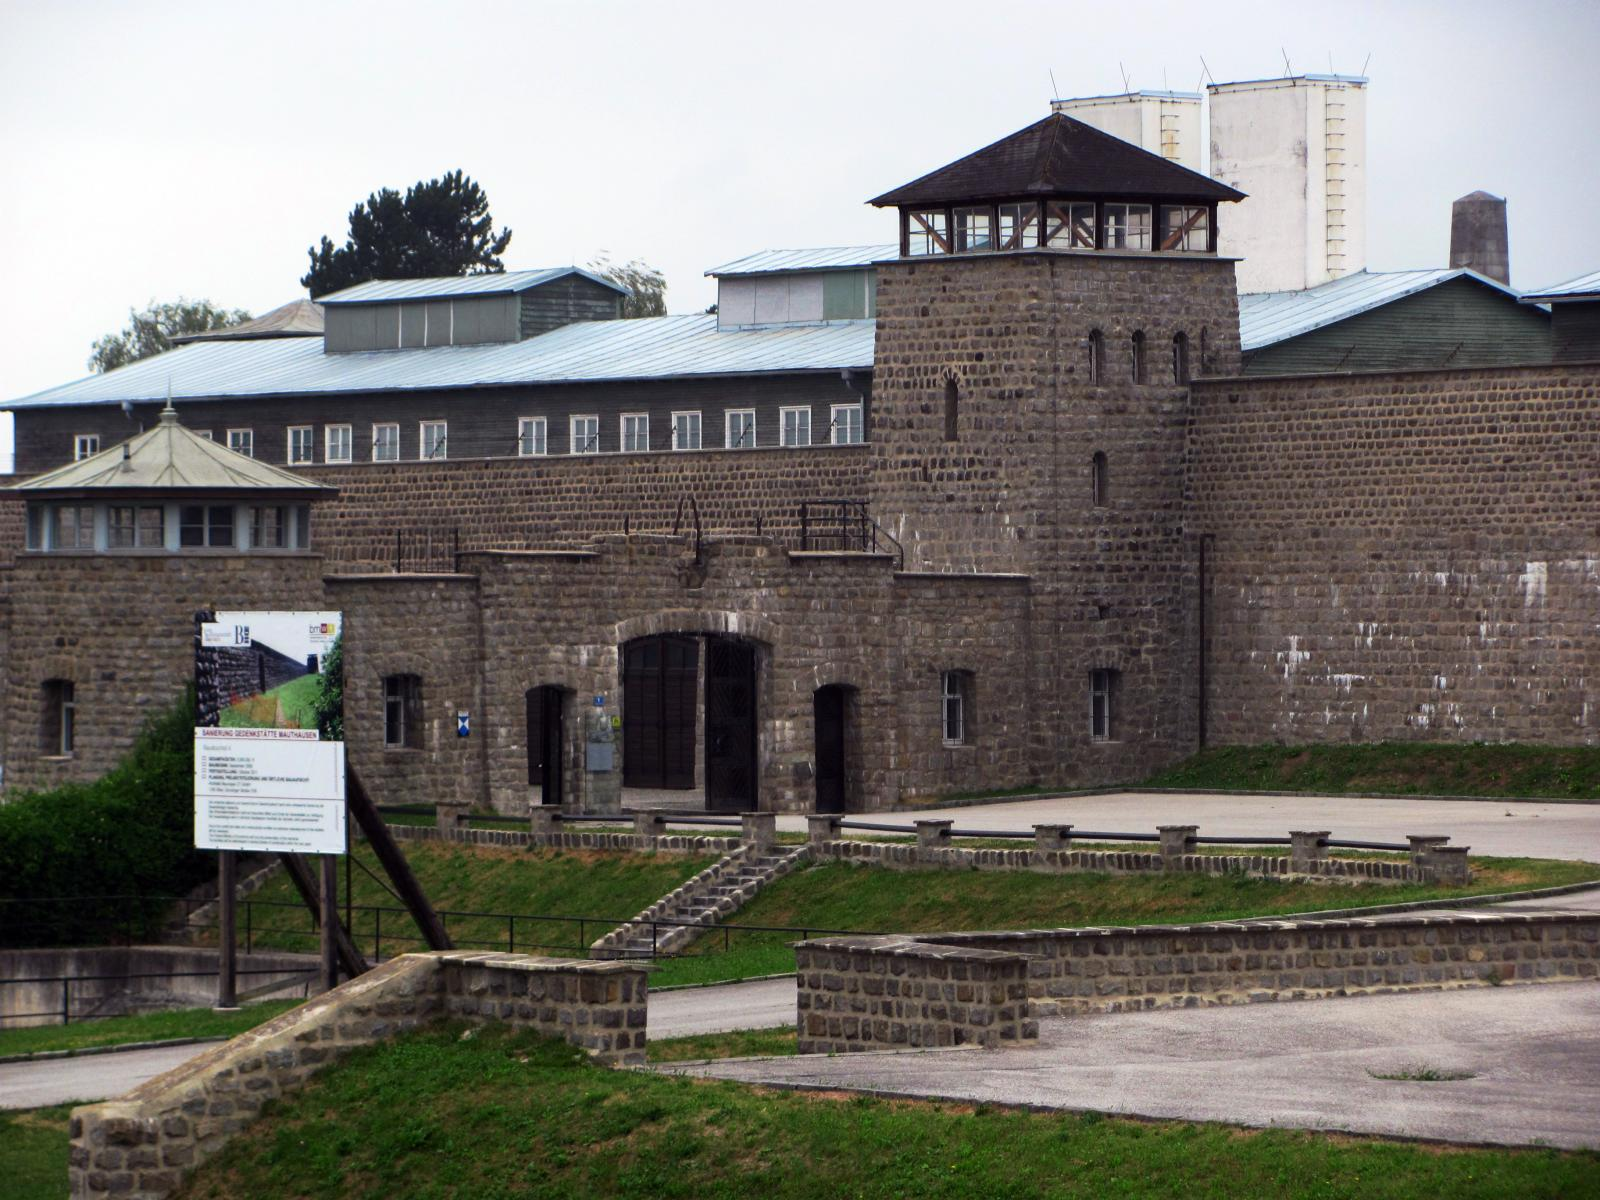 Germany charged Hans H. with over 36,000 counts of accessory to murder during his time as a guard at the Mauthausen-Gusen concentration camp. (Glen Scarborough, flickr)